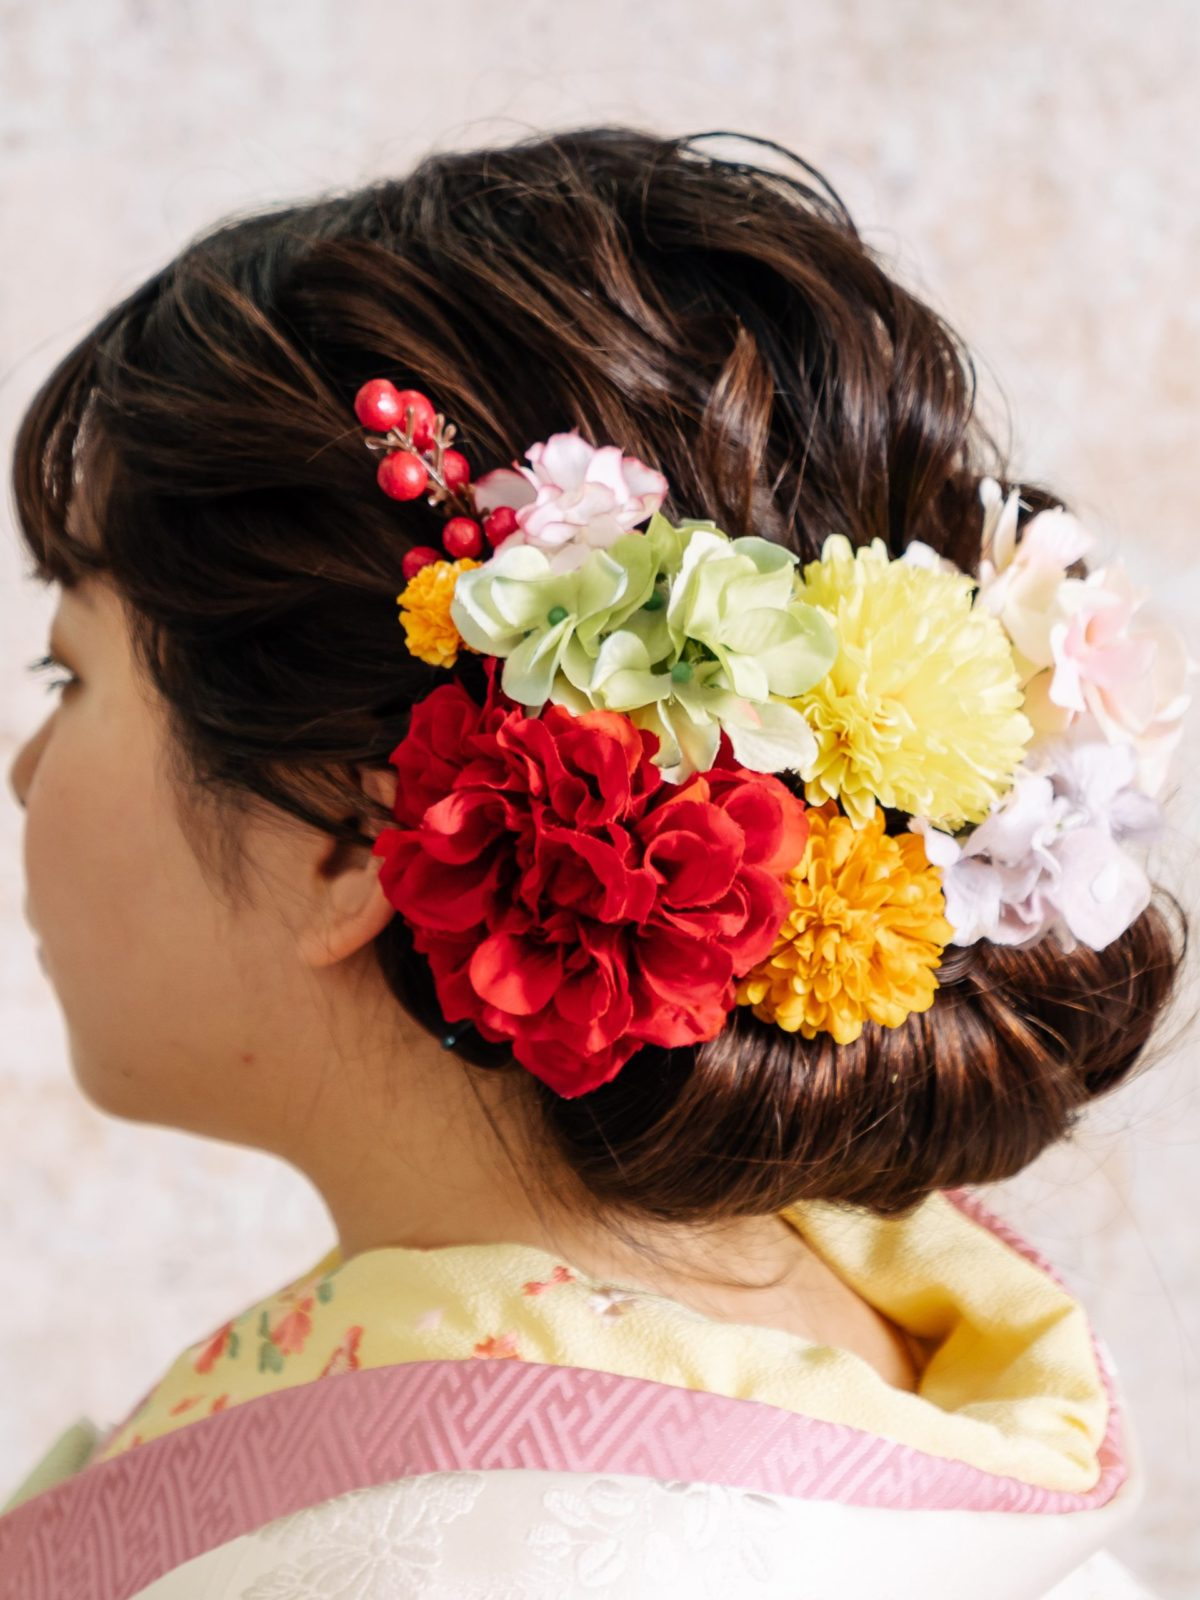 Artificial flower 【style1】